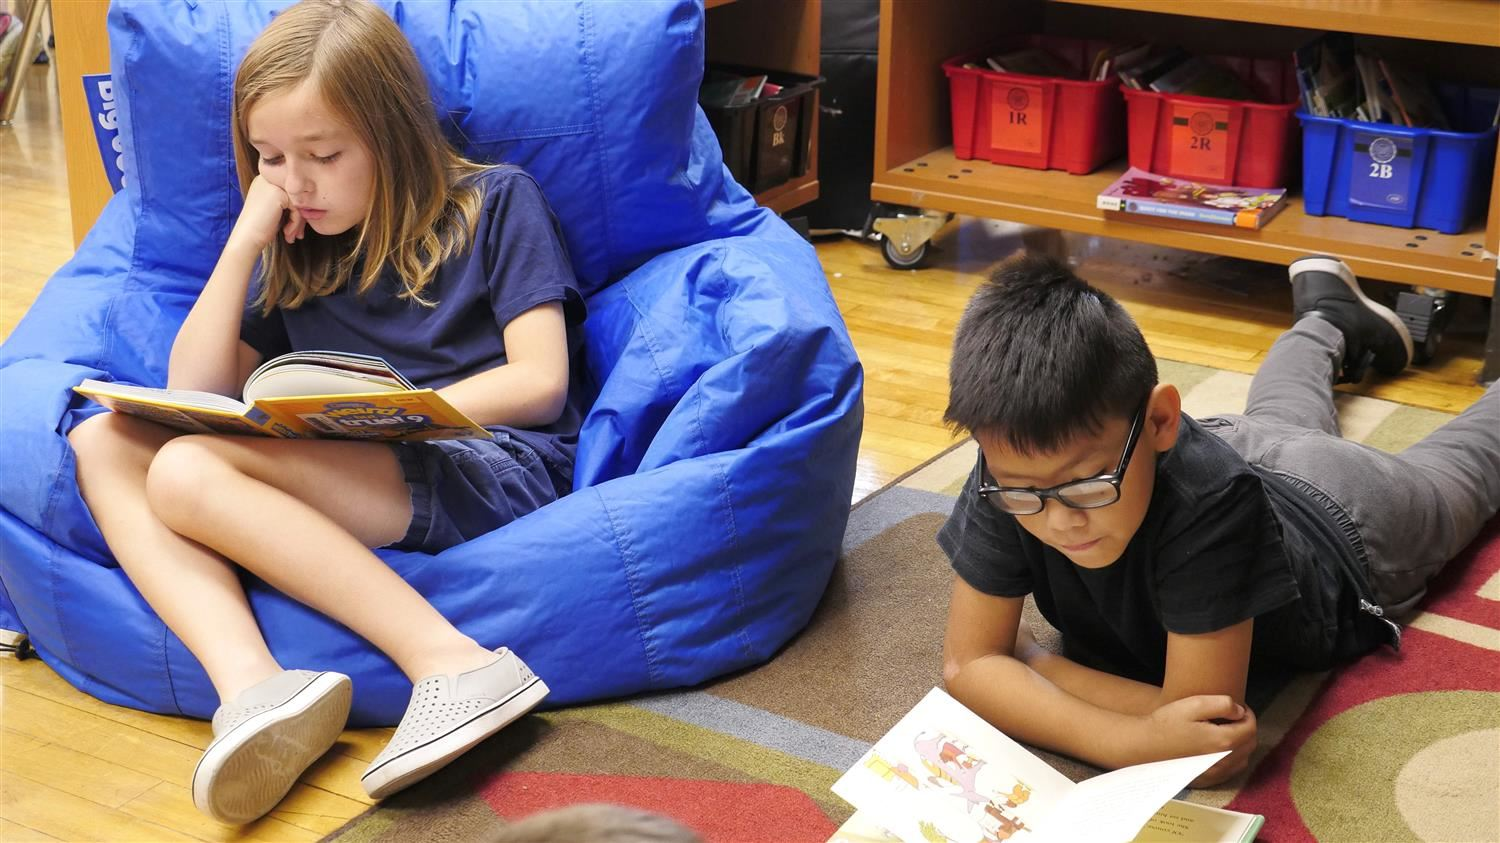 Scholastic Highlights Elementary School Literacy Program In New Video